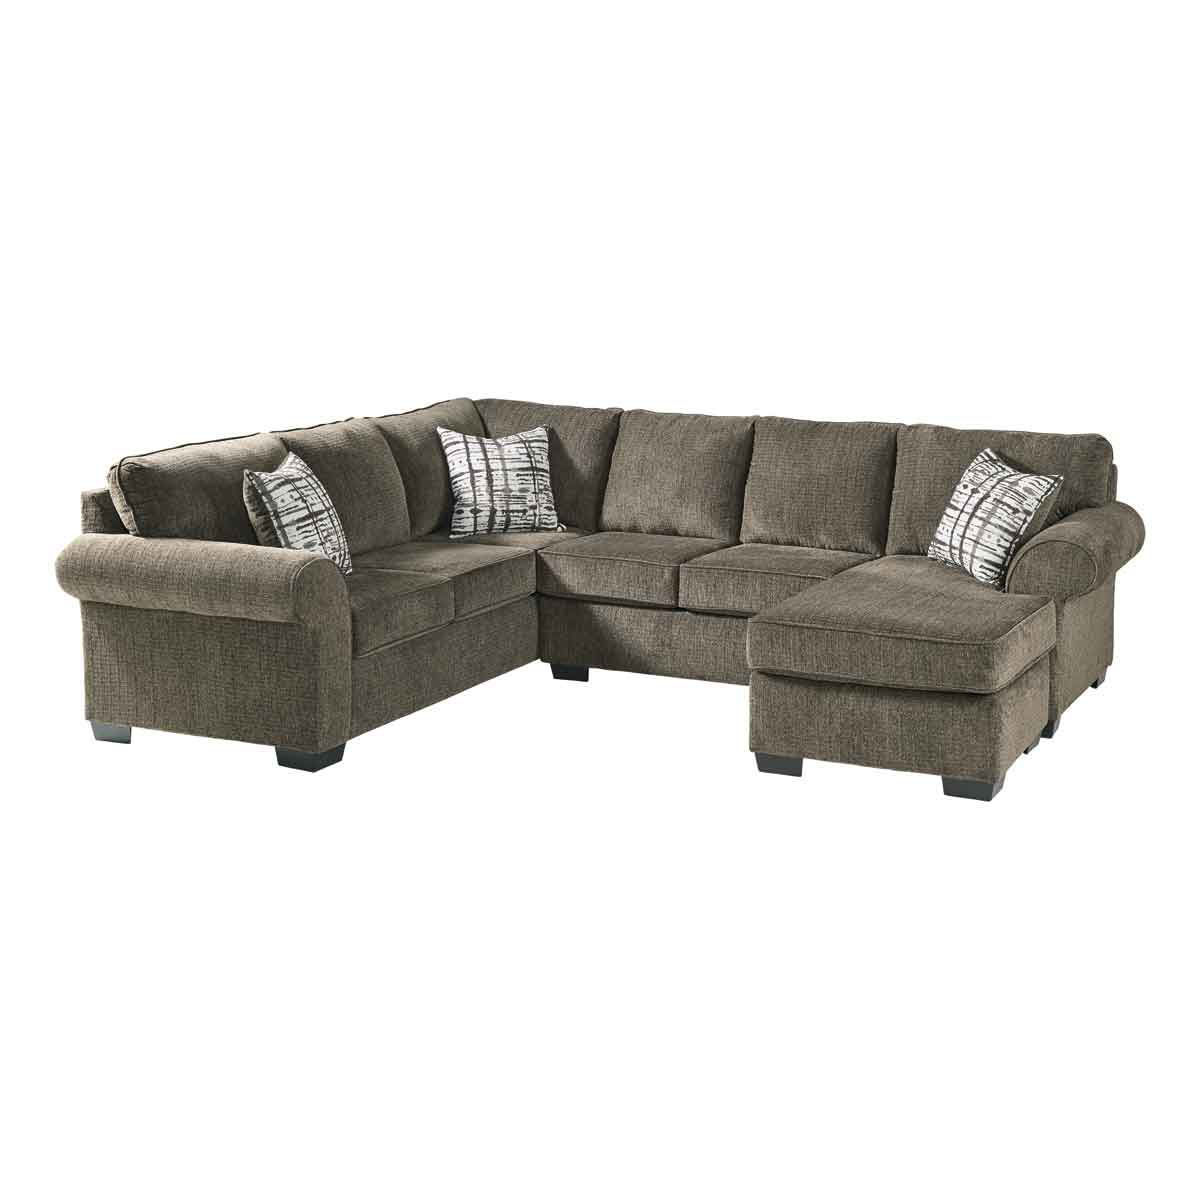 Picture of CHANNING 3 PIECE SECTIONAL